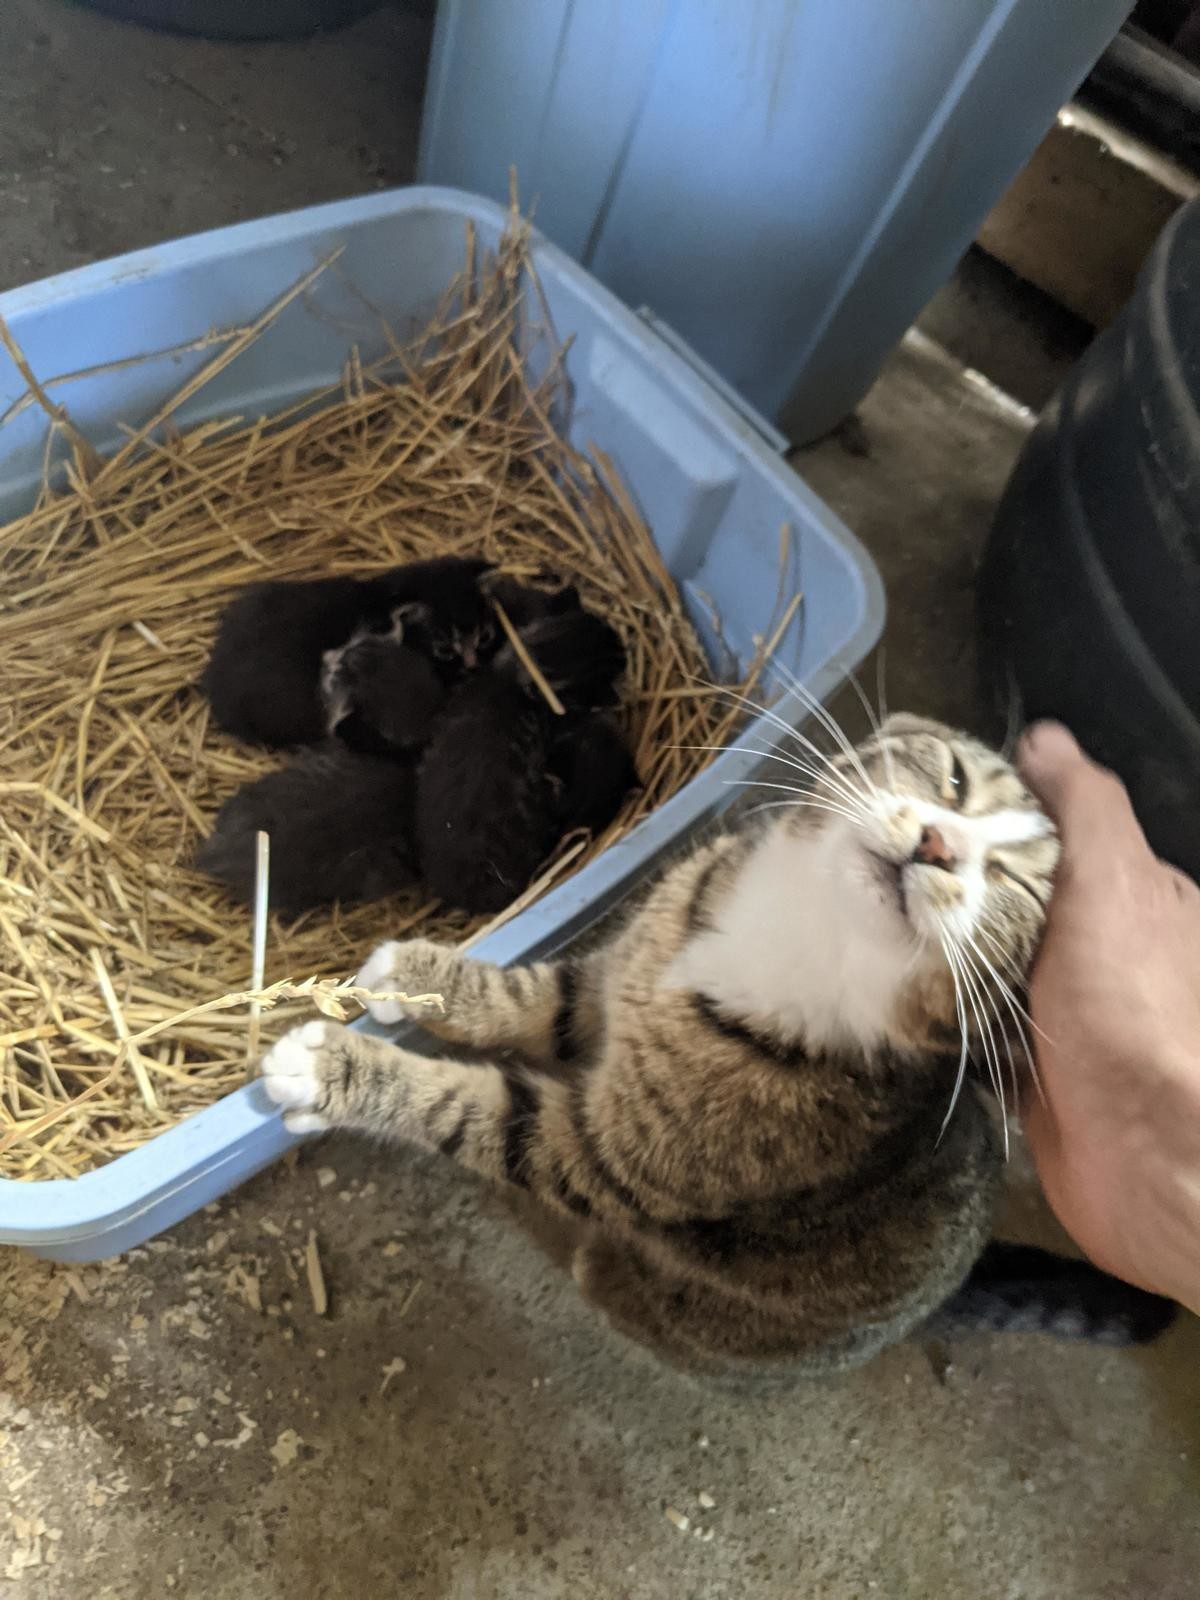 """""""see? they are good kitties! :)"""". join list: DoseOfCuteness (929 subs)Mention Clicks: 162664Msgs Sent: 2510997Mention History.. WHY ARE THEY BLACK? Just kidding, very nice"""